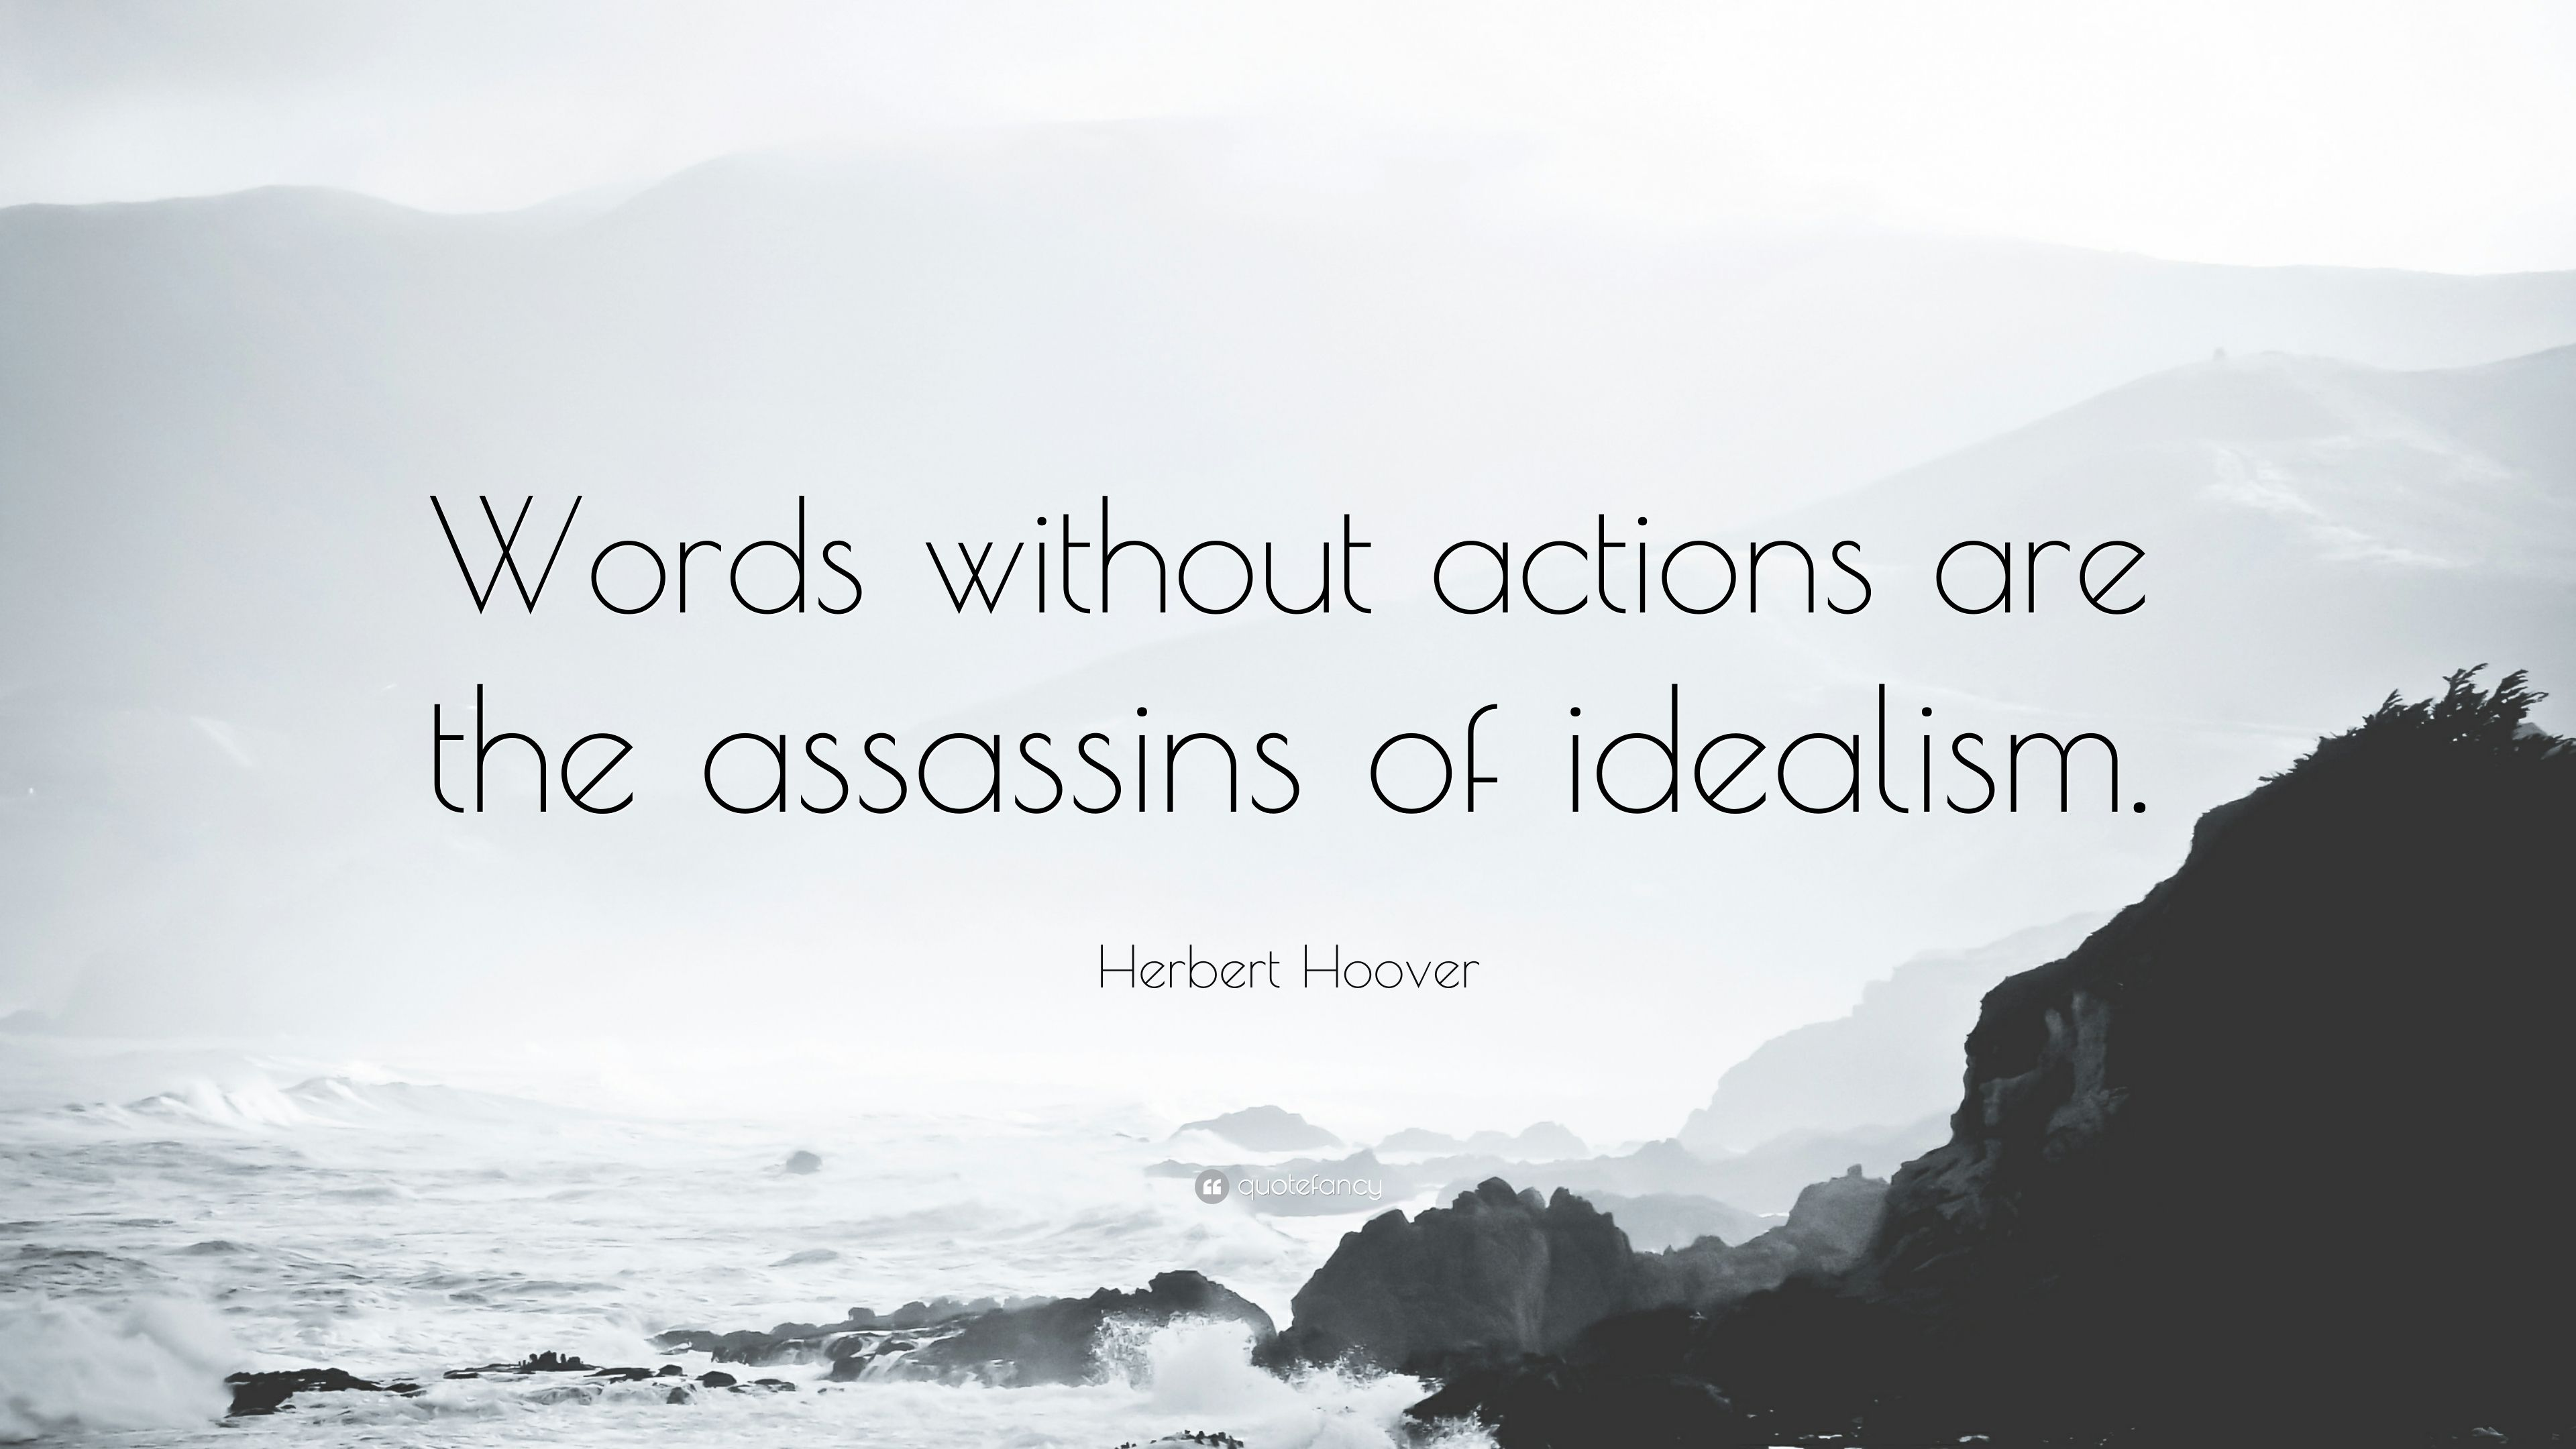 Herbert hoover quote words without actions are the assassins of idealism